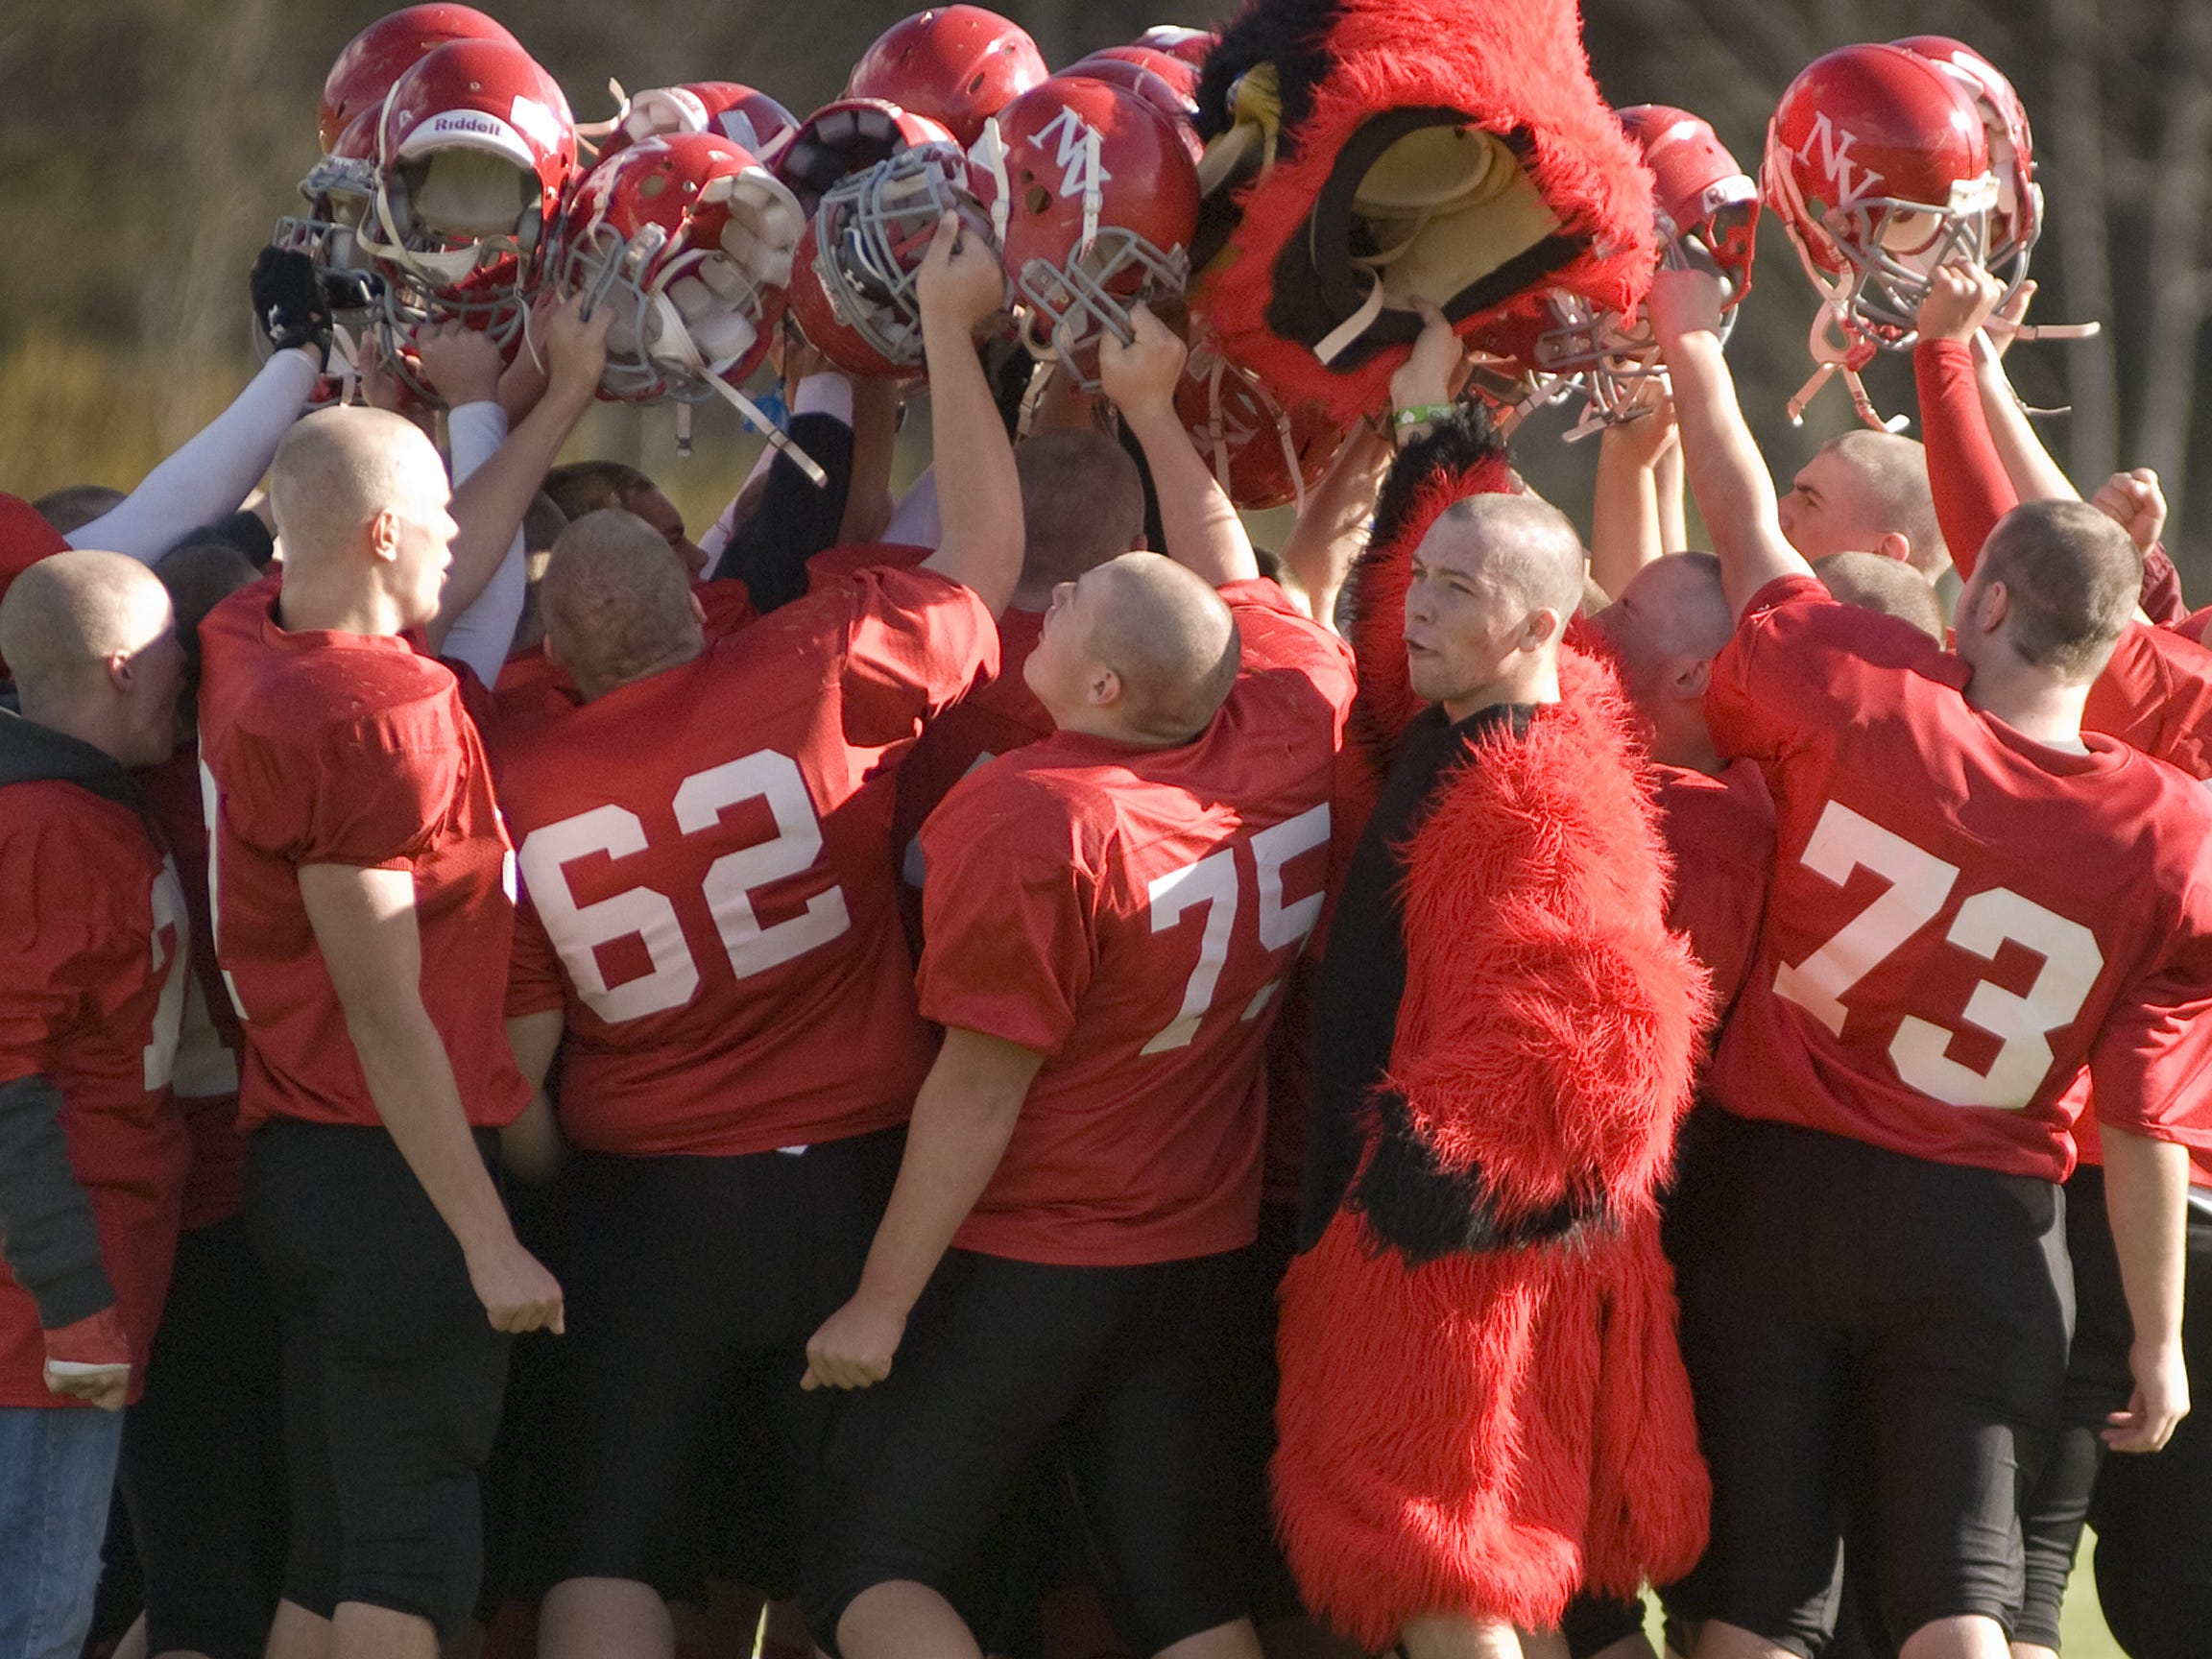 From 2010: Newark Valley, including their Cardinal mascot, celebrates their win against Trumansburg.